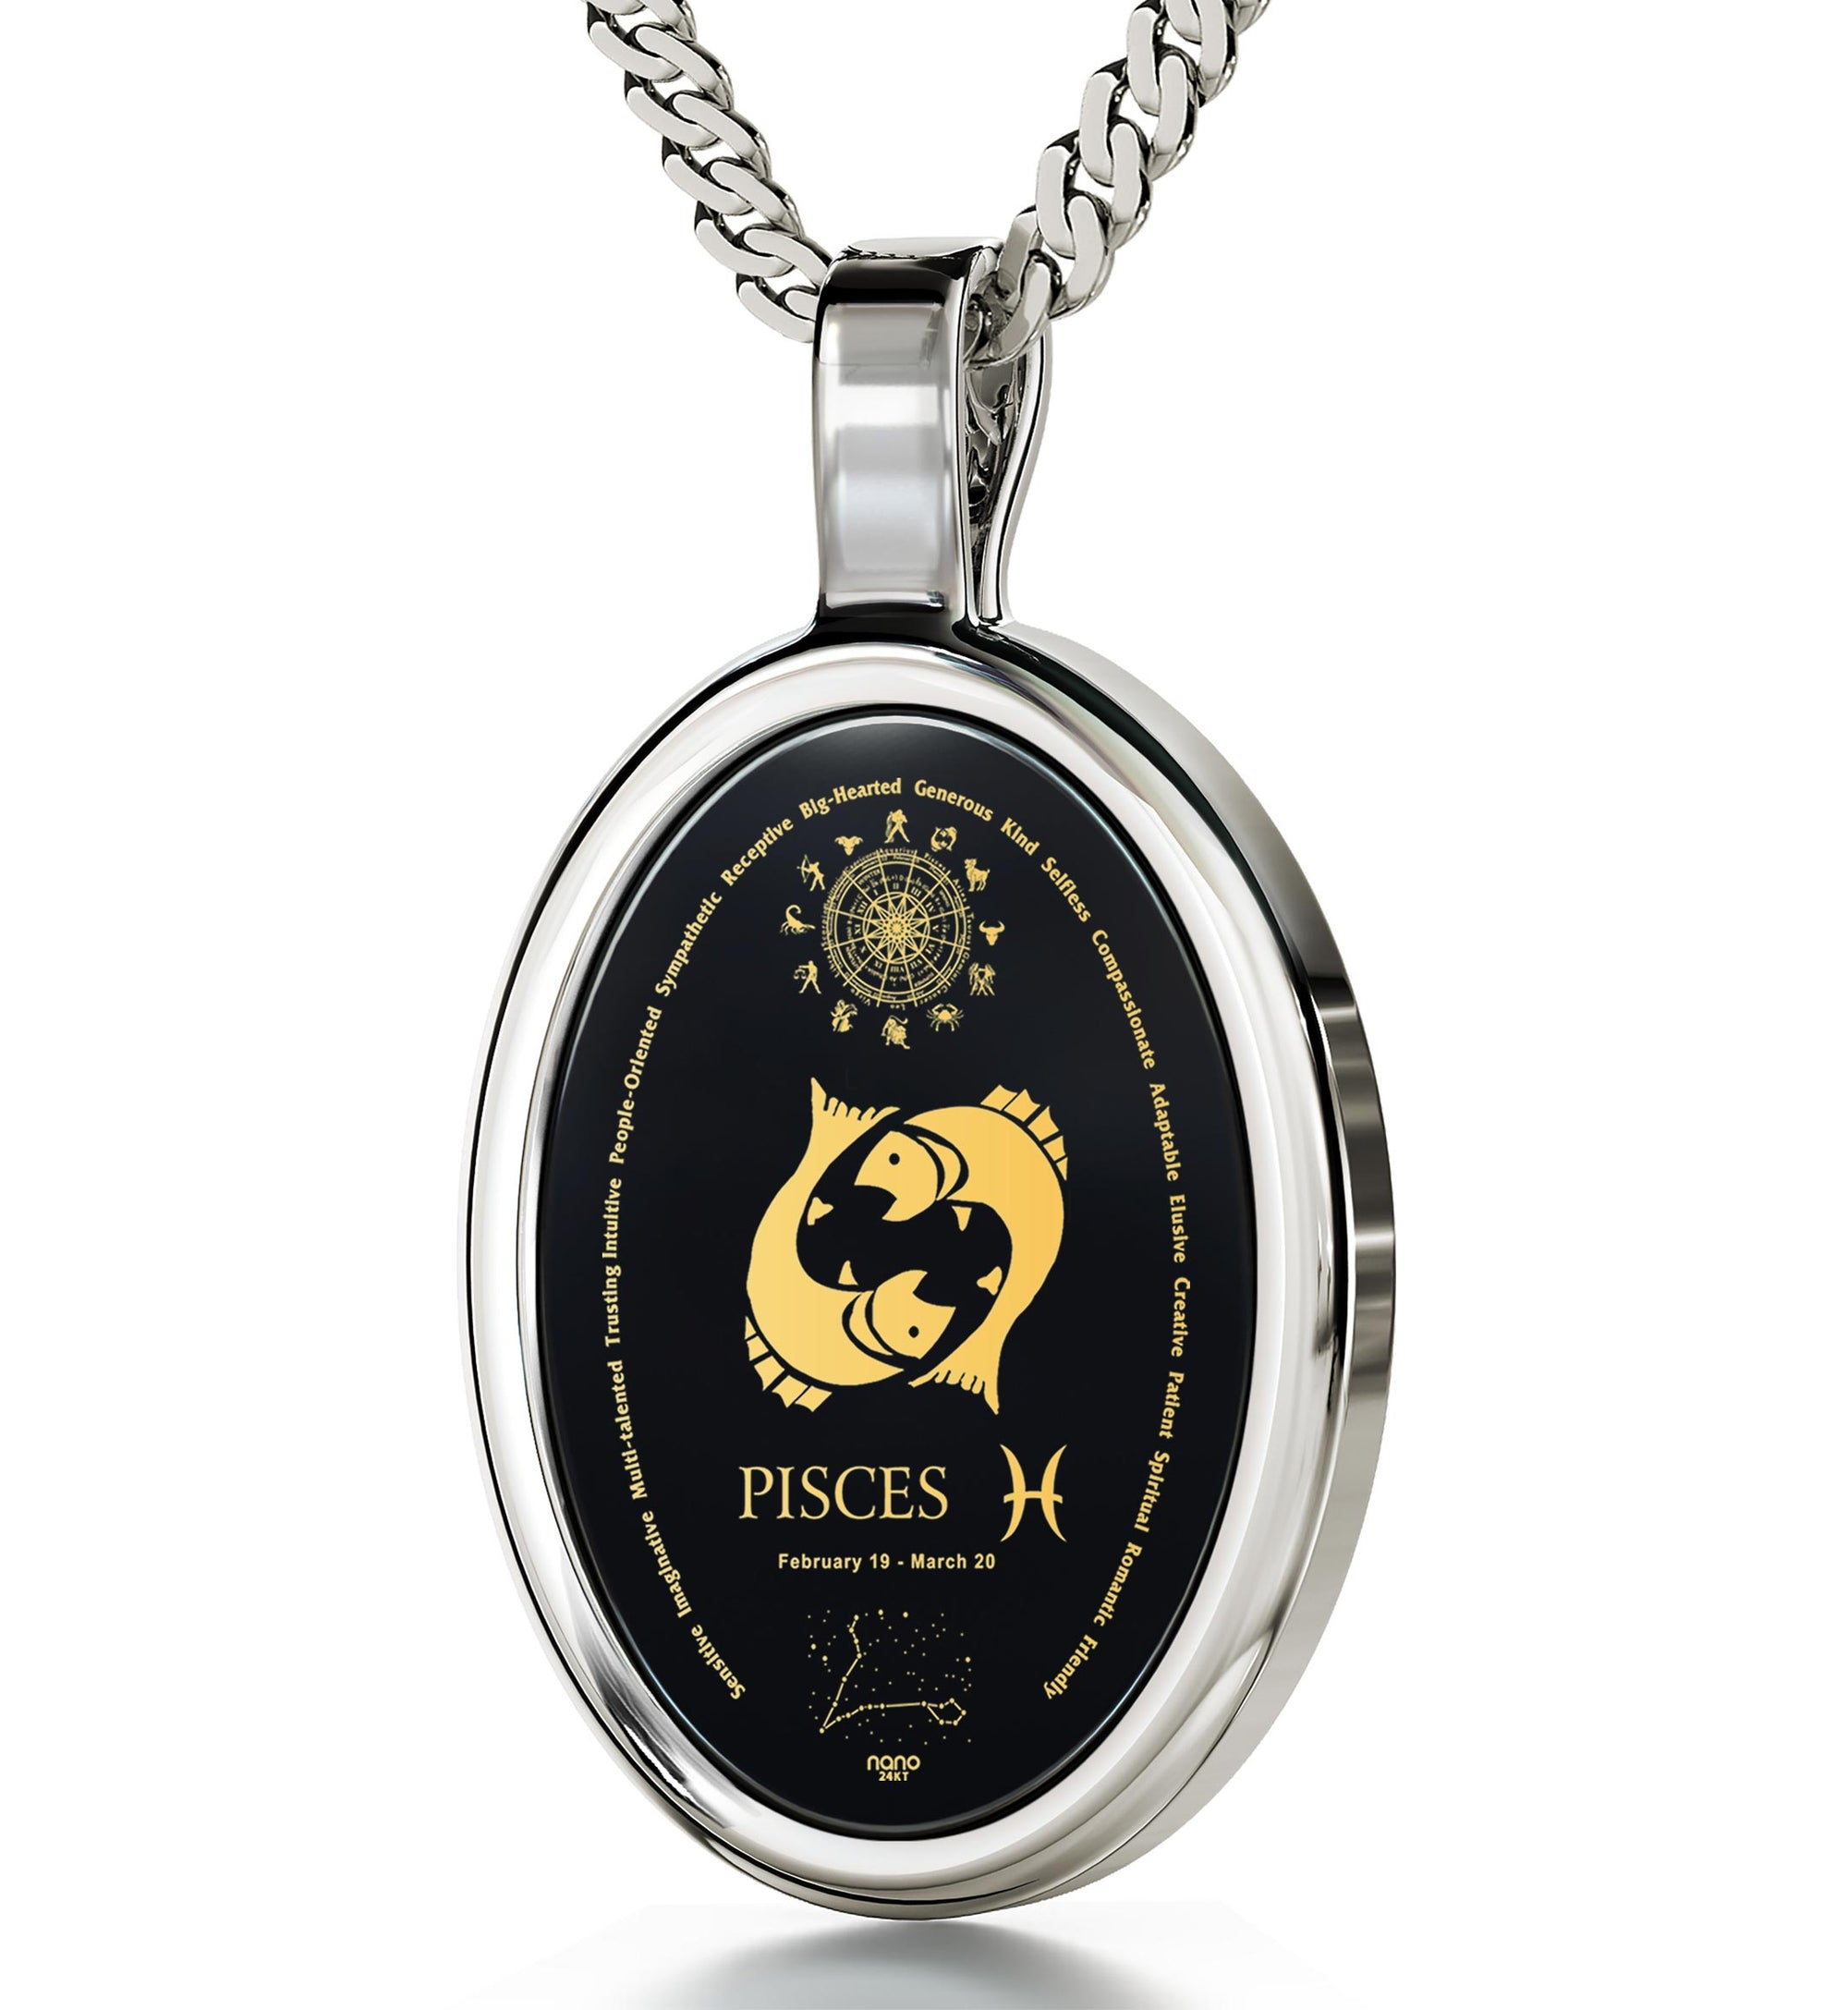 charm ip shape necklace pendant chain com round with spiritual walmart filigree locket engraved